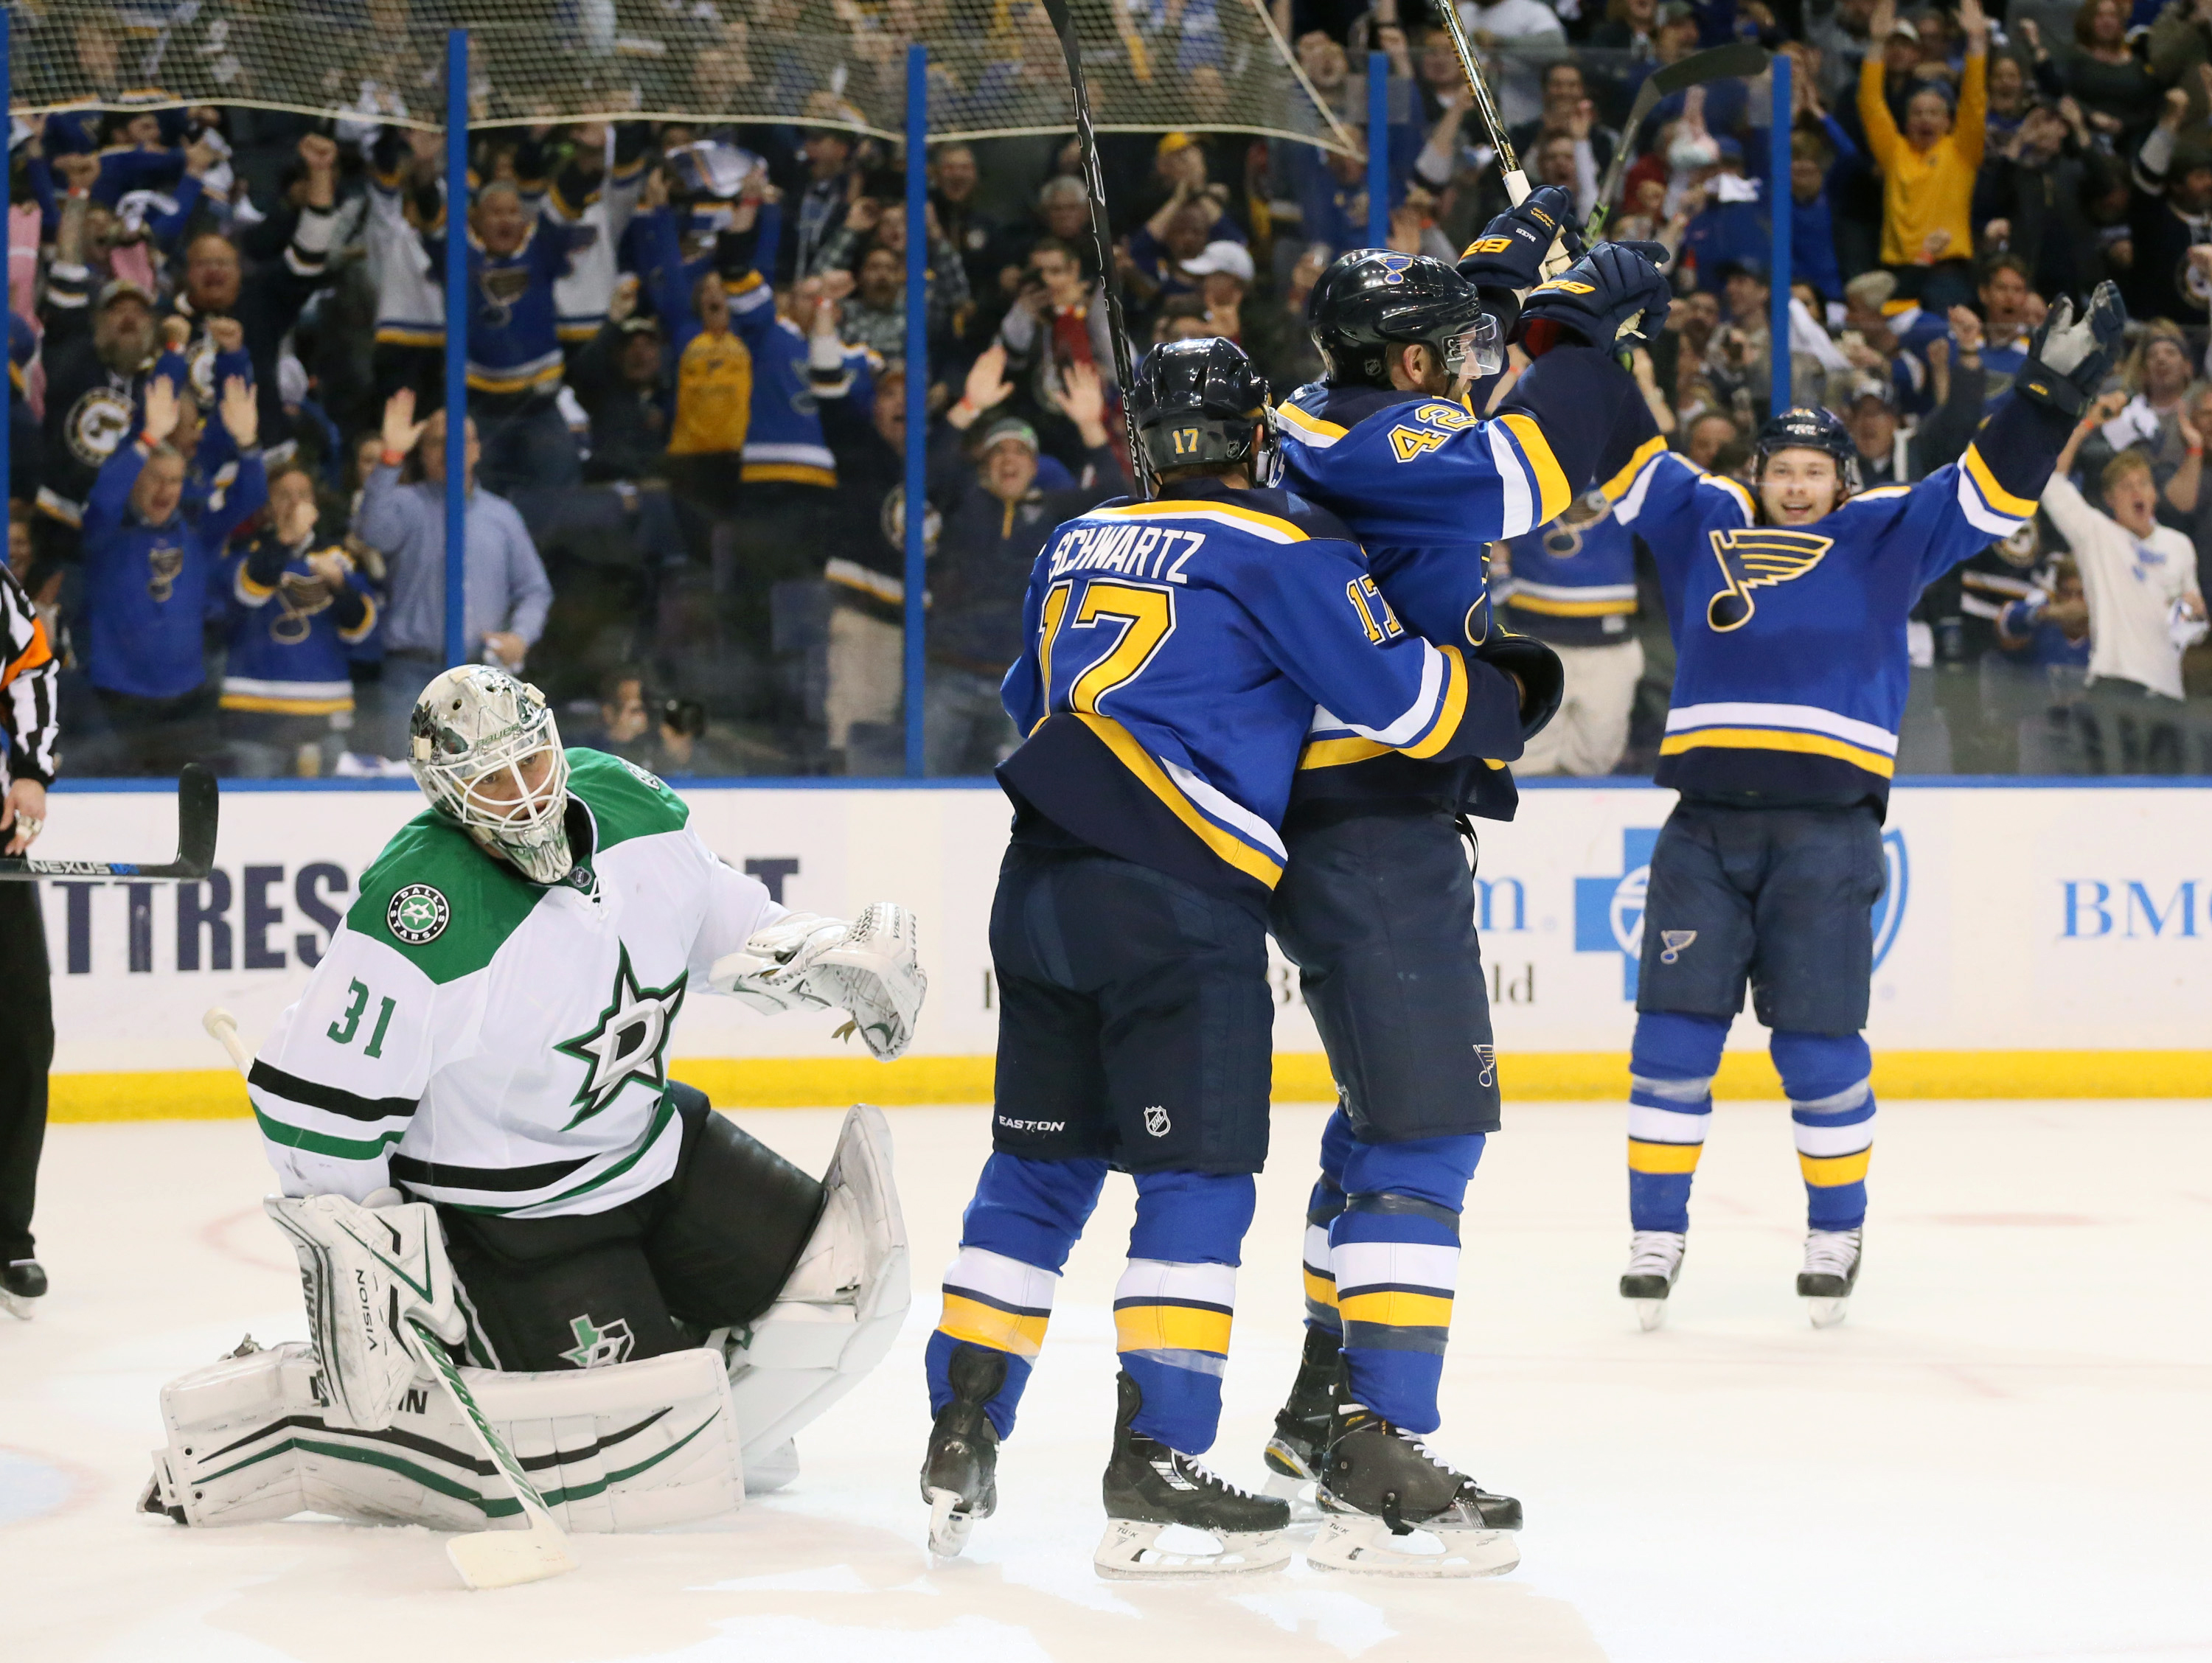 St. Louis Blues left wing Jaden Schwartz (17) celebrates with right wing David Backes (42) after Backes scored past Dallas Stars goaltender Antti Niemi in the first period of Game 3 of the NHL hockey Stanley Cup Western Conference semifinals, Tuesday, May